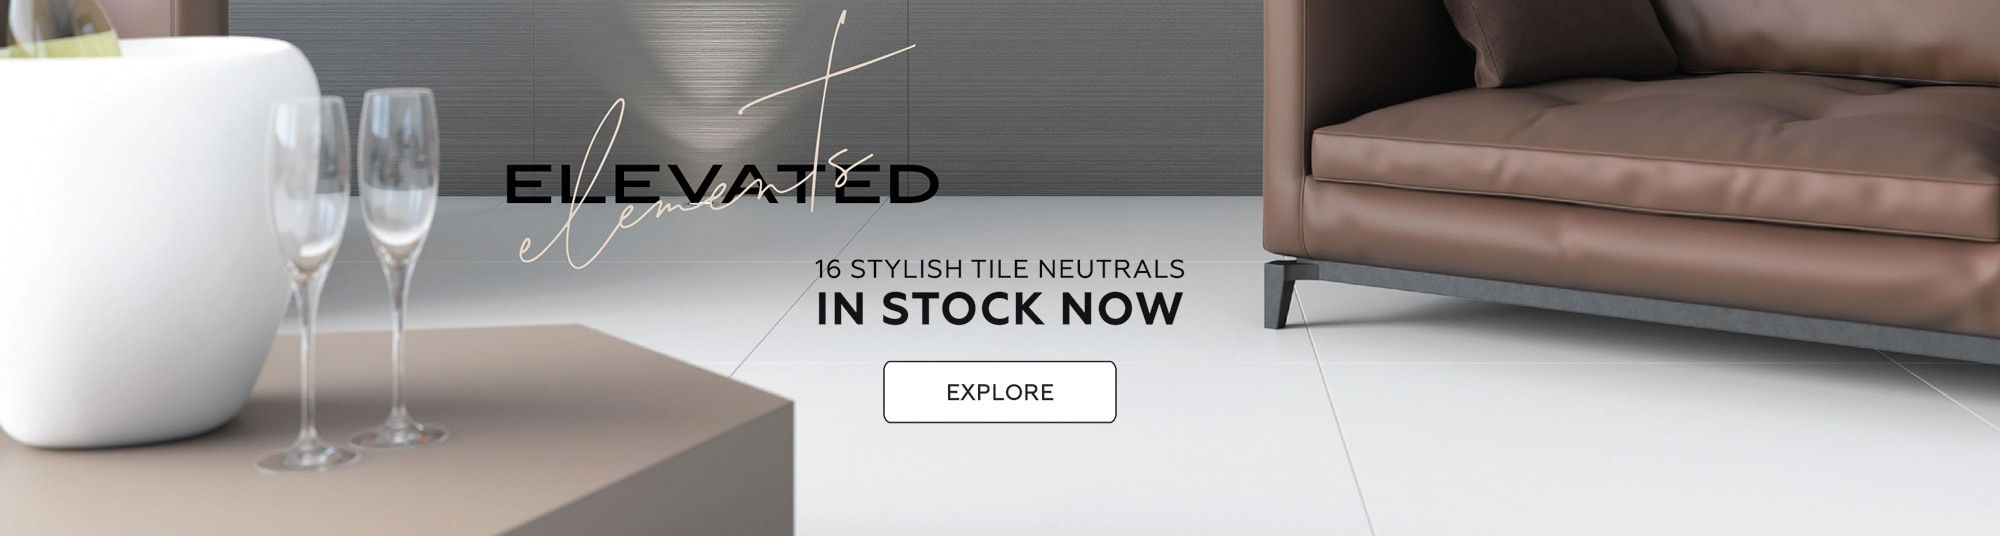 Elevated Elements by Daltile: 16 Stylish Tile Neutrals IN STOCK NOW